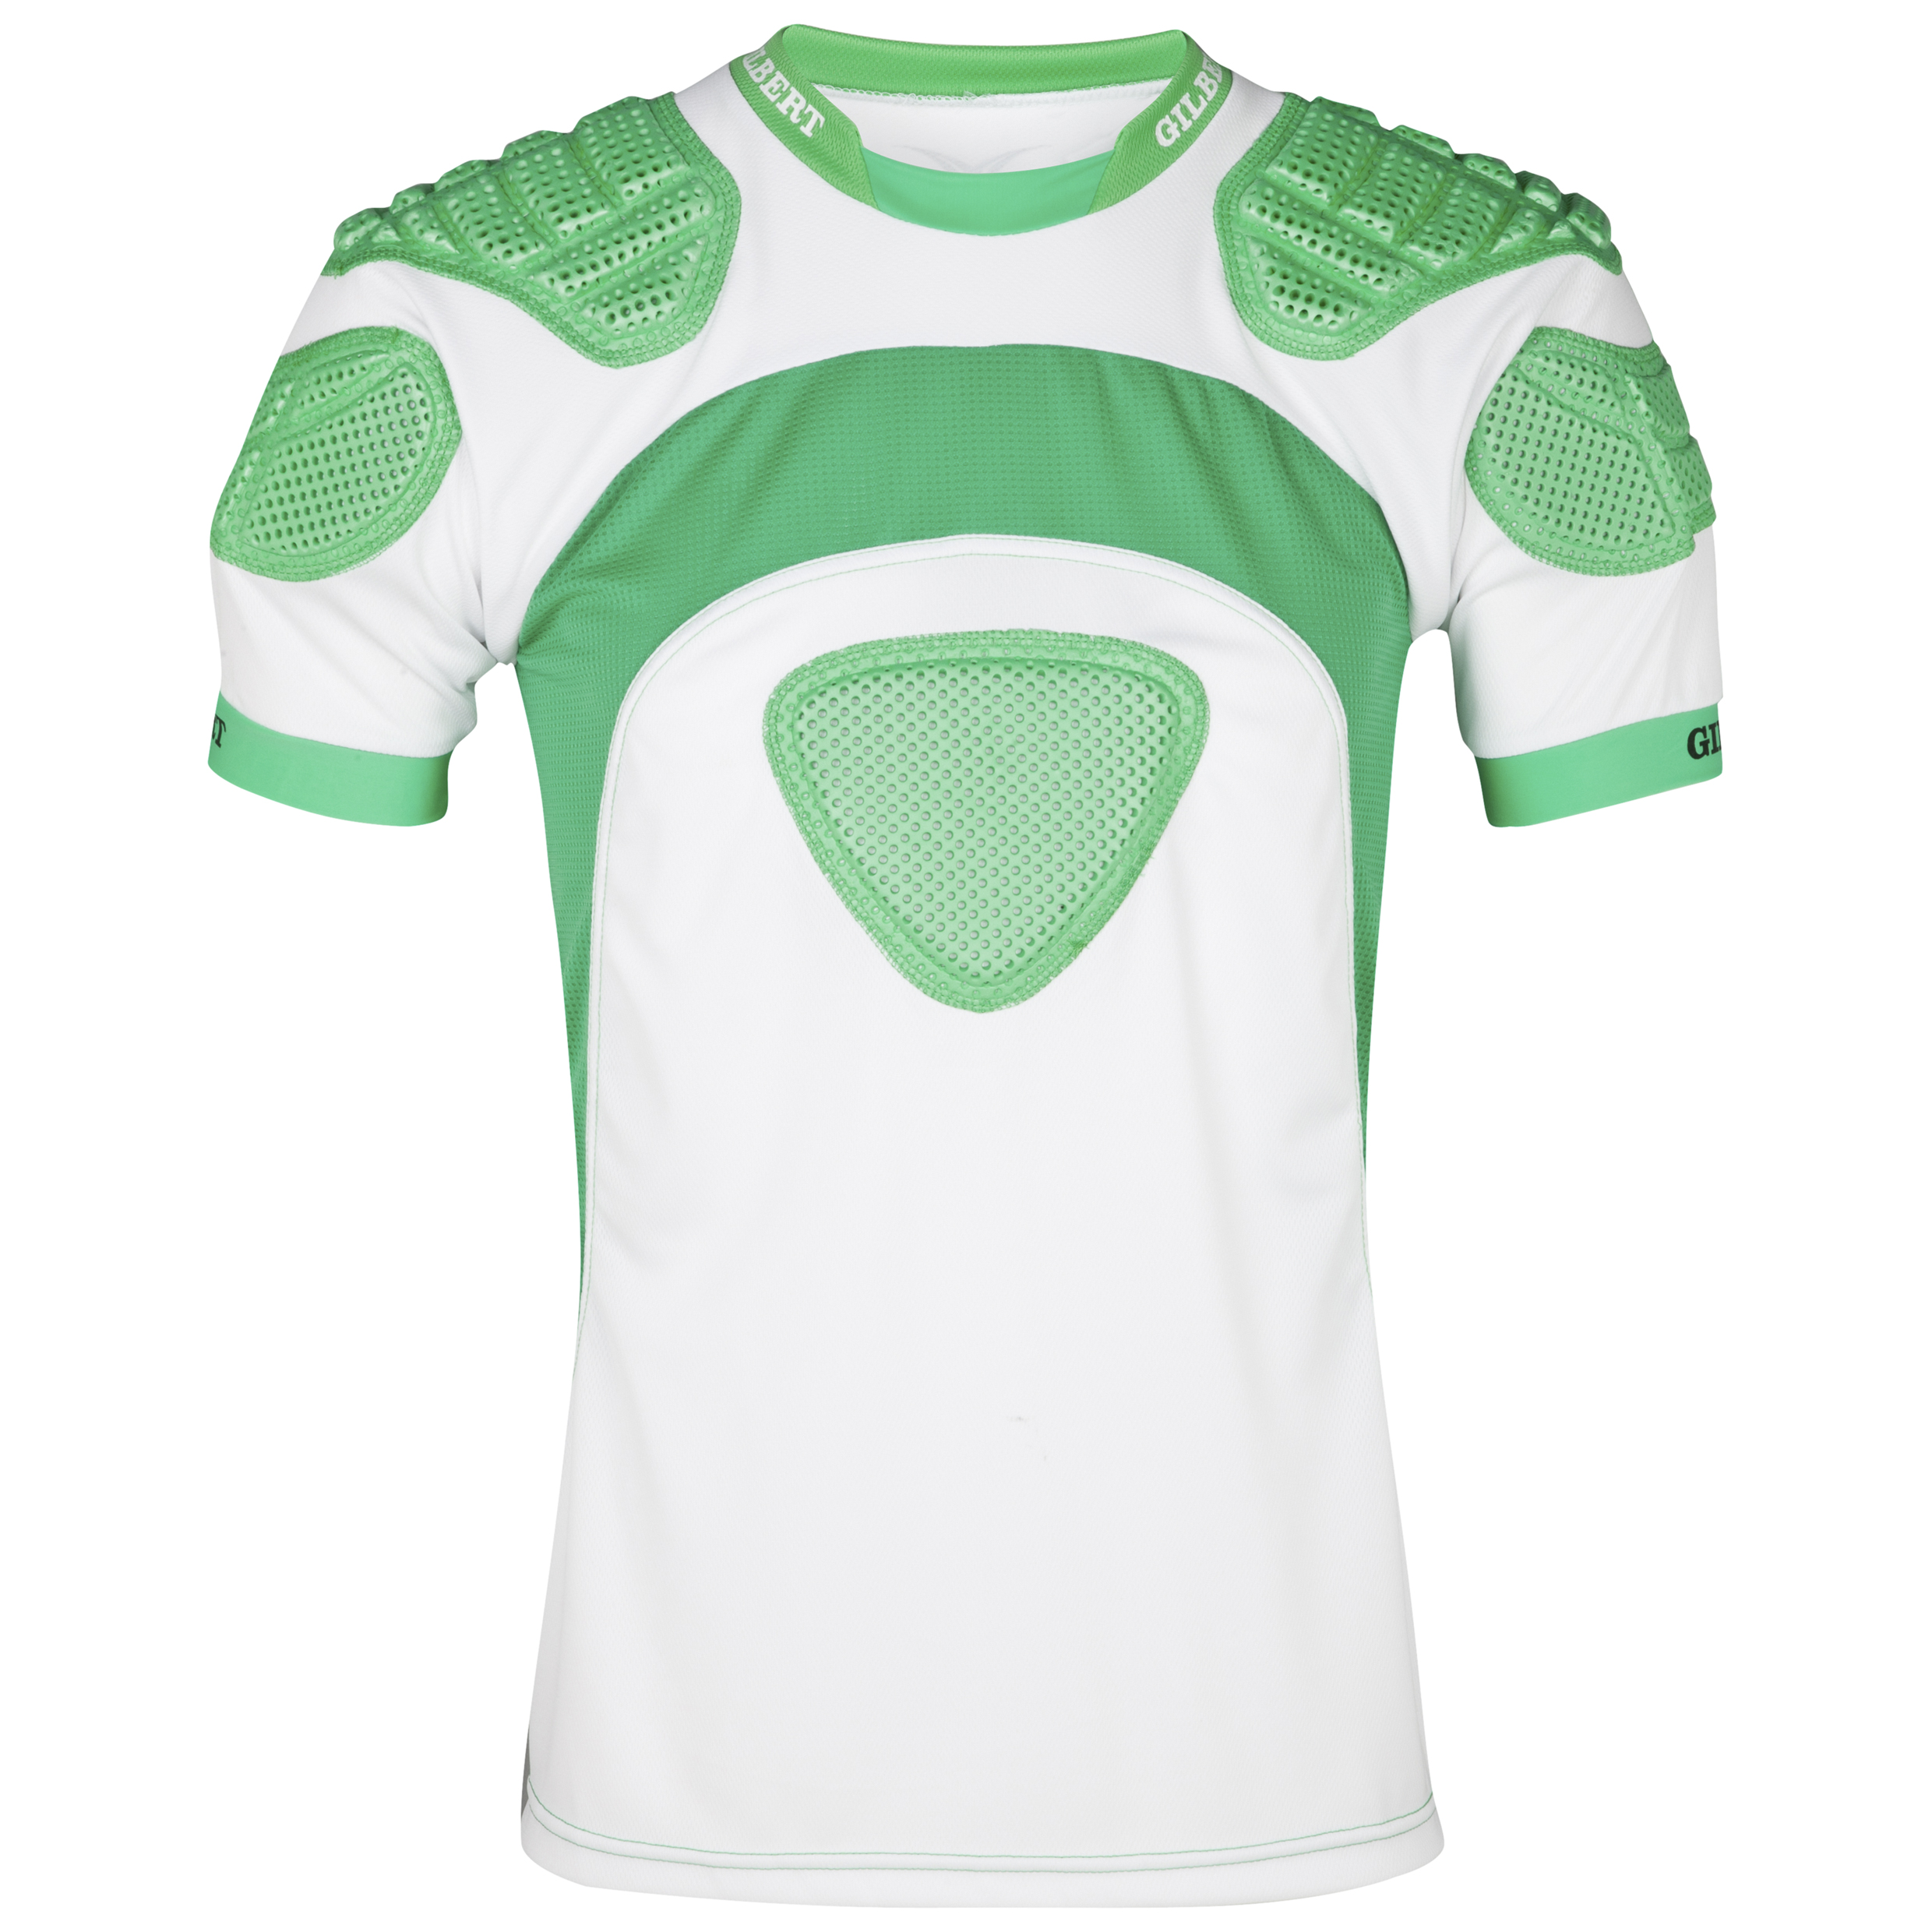 Gilbert Mercury Rugby Body Armour-White/Green -